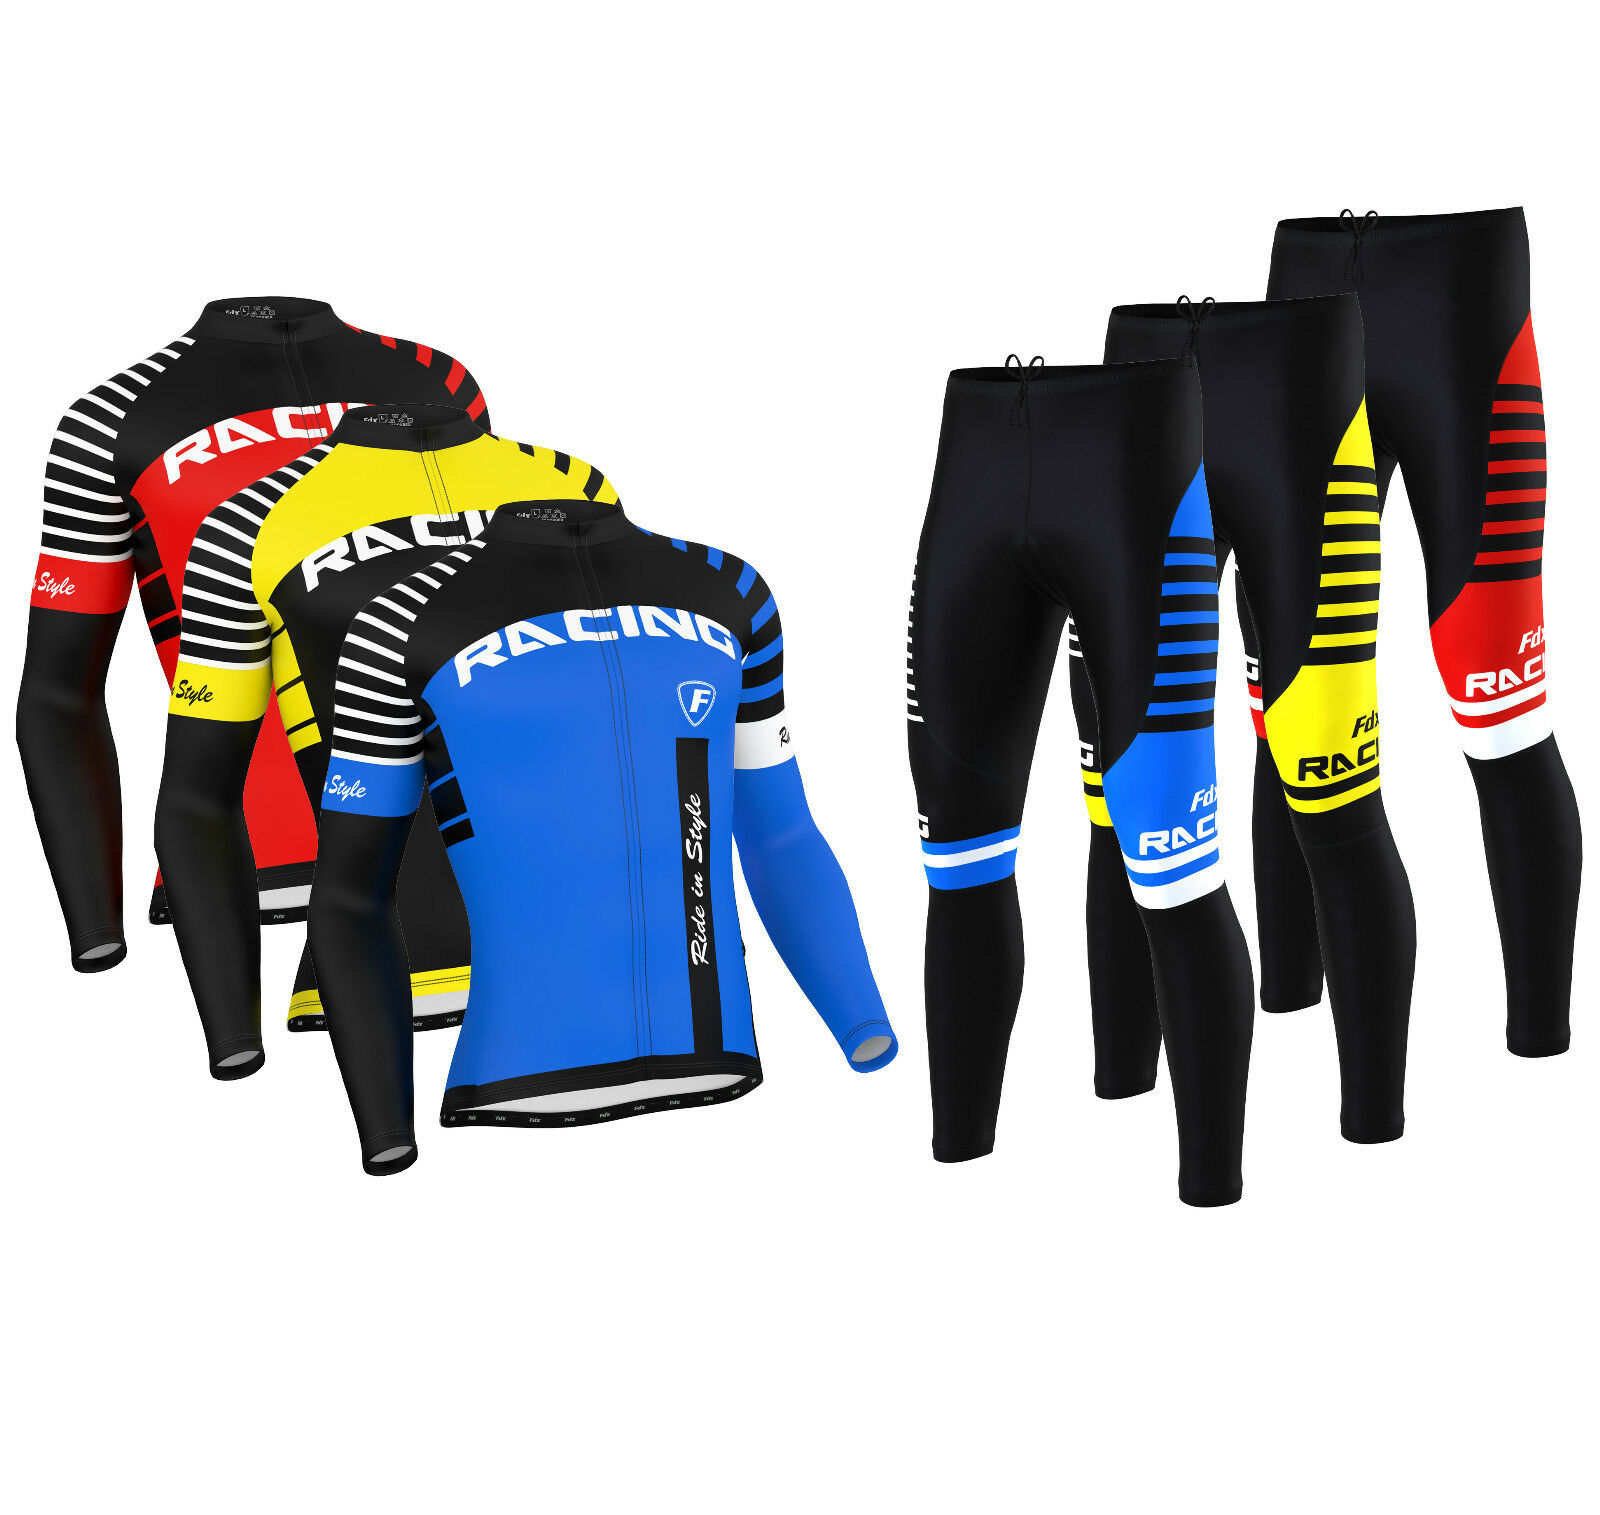 FDX  Herren Blaze Cycling Jersey Cold Wear Thermal Top + Cycling Tights Pants  Set